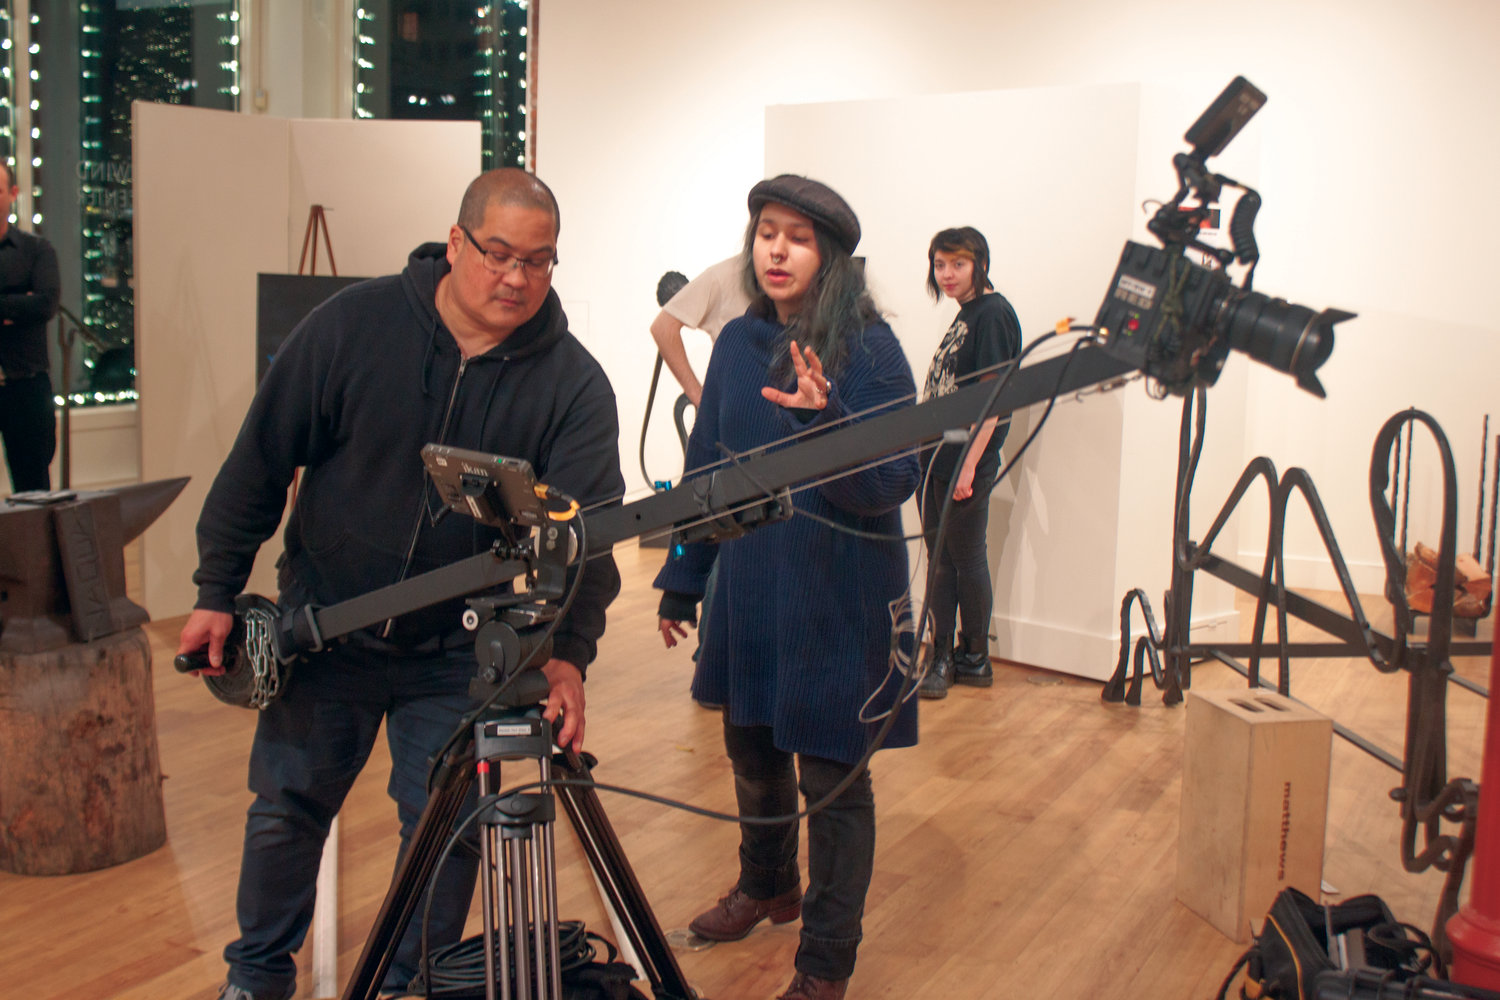 "Director of photography Brody Willis (left) receives guidance from ""She the Creator"" director Juliette Wallace on the positioning of the camera during their Nov. 18 shoot in Northwind Arts Center in Port Townsend."